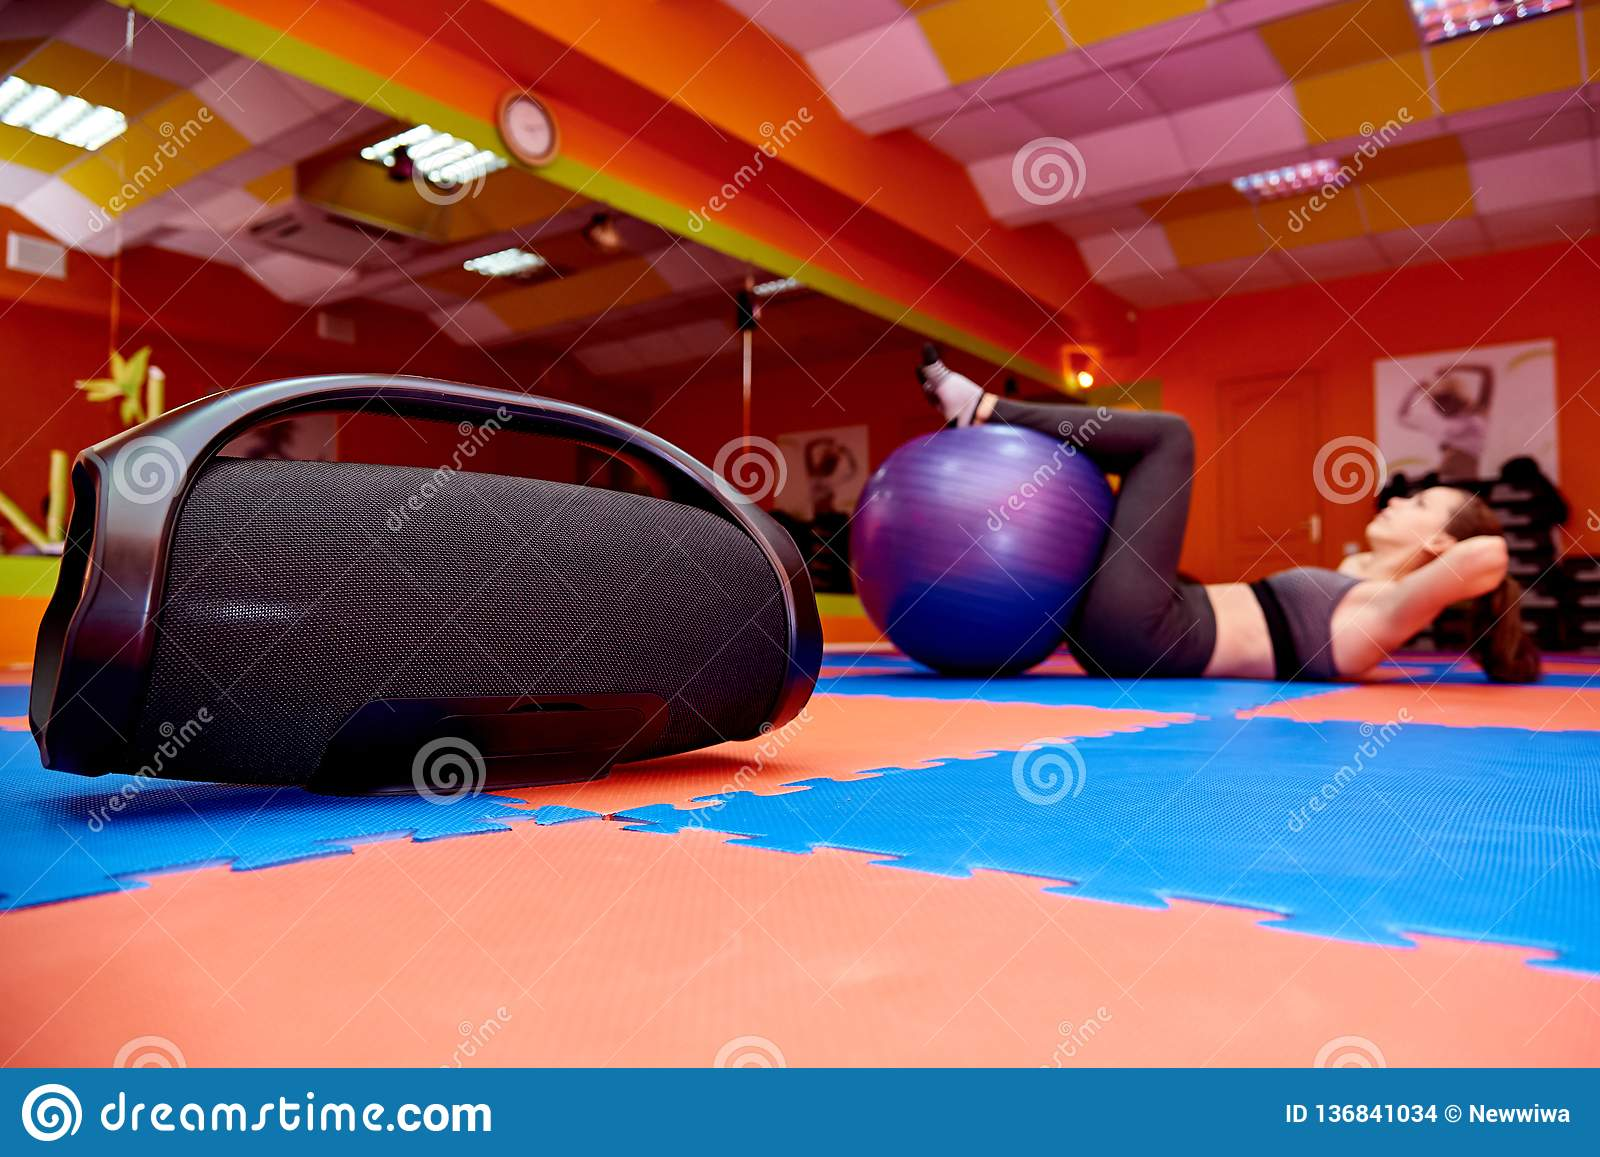 Portable acoustics in the aerobics room on the background of a blurred girl practicing sport